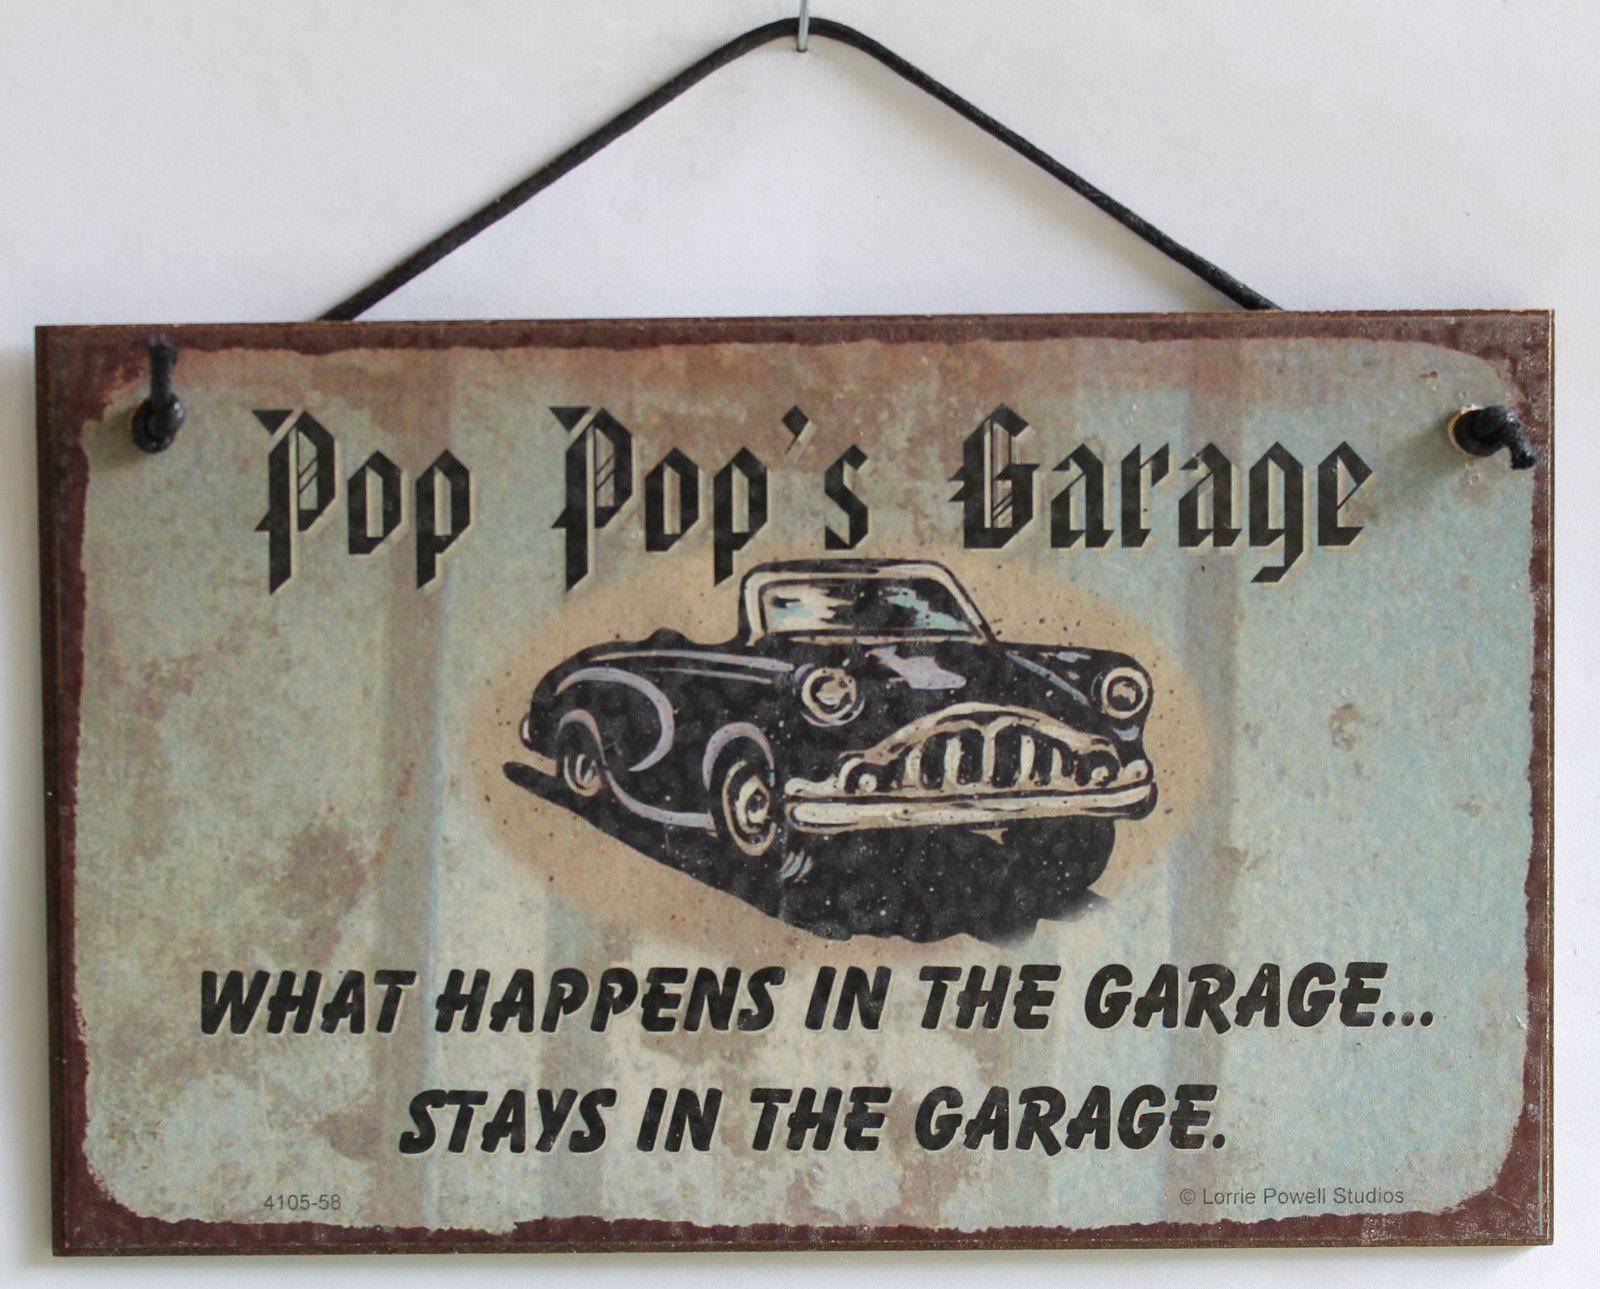 Stays in The Garage Decorative Fun Universal Household Signs for Grandpa Egberts Treasures 5x8 Sign with Classic Car Saying Papaws Garage What Happens in The Garage